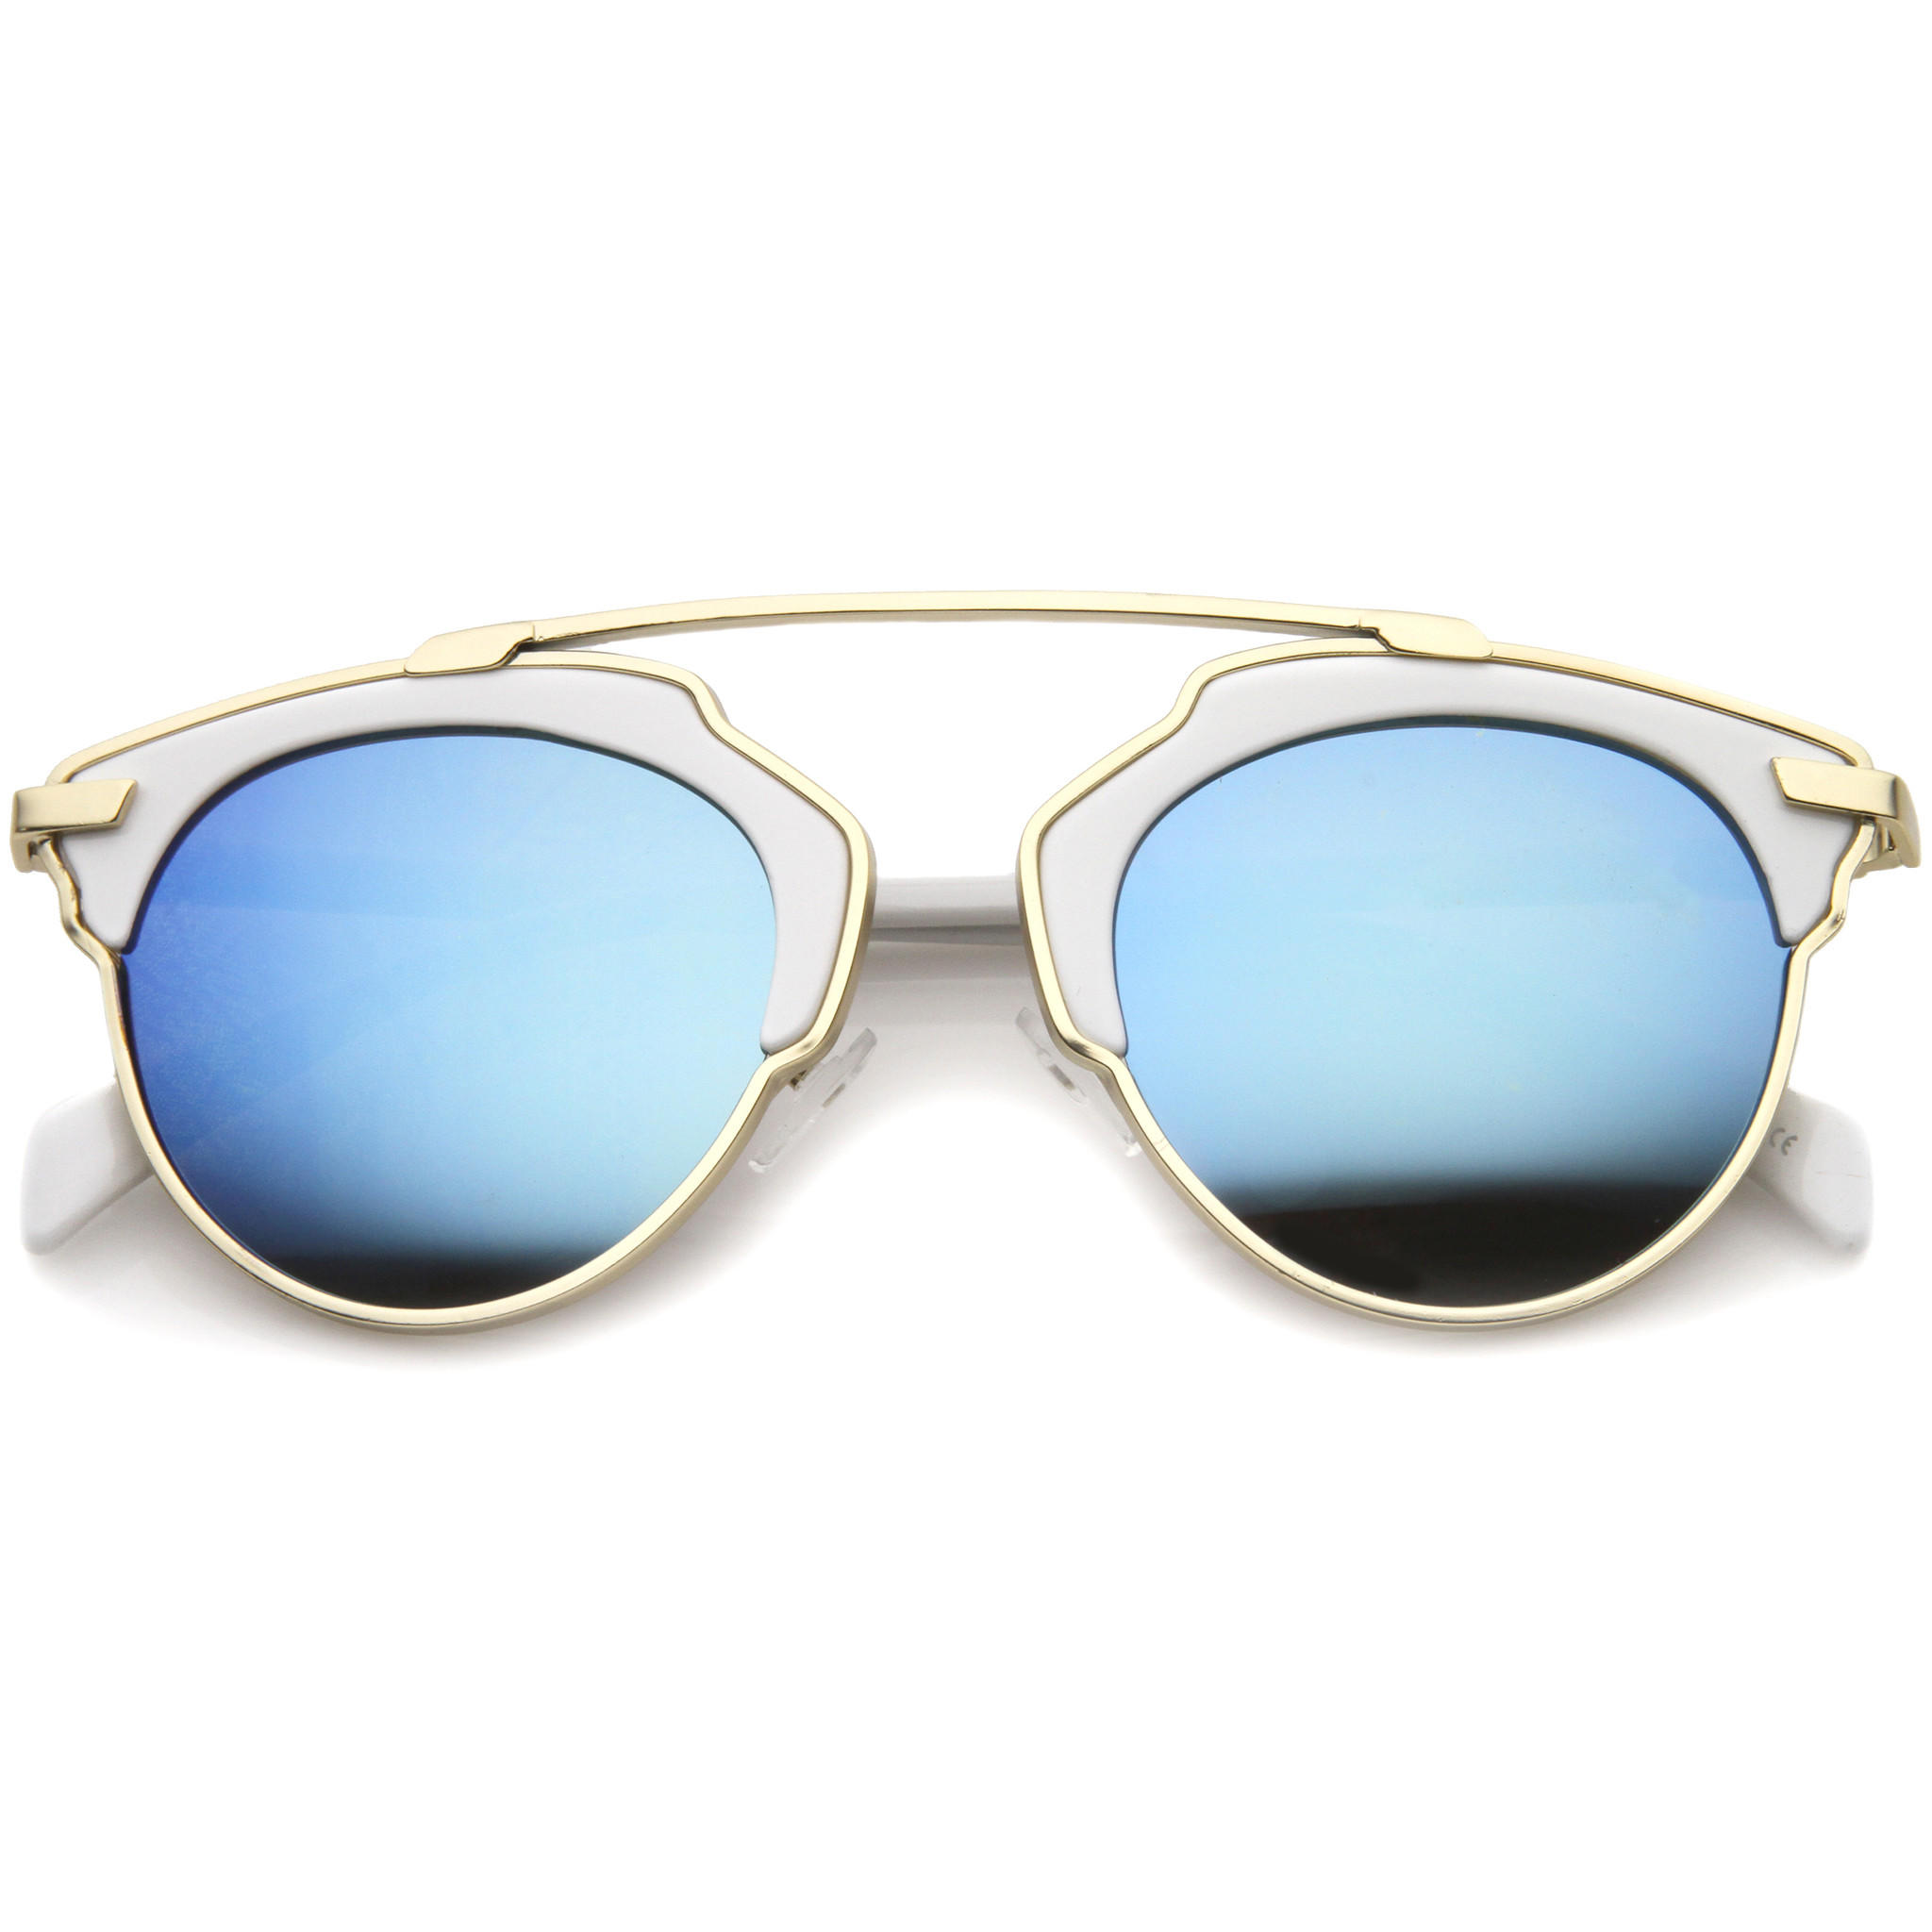 aviator sunglasses reflective  Shop Silver Mirrored Aviator Sunglasses on Wanelo